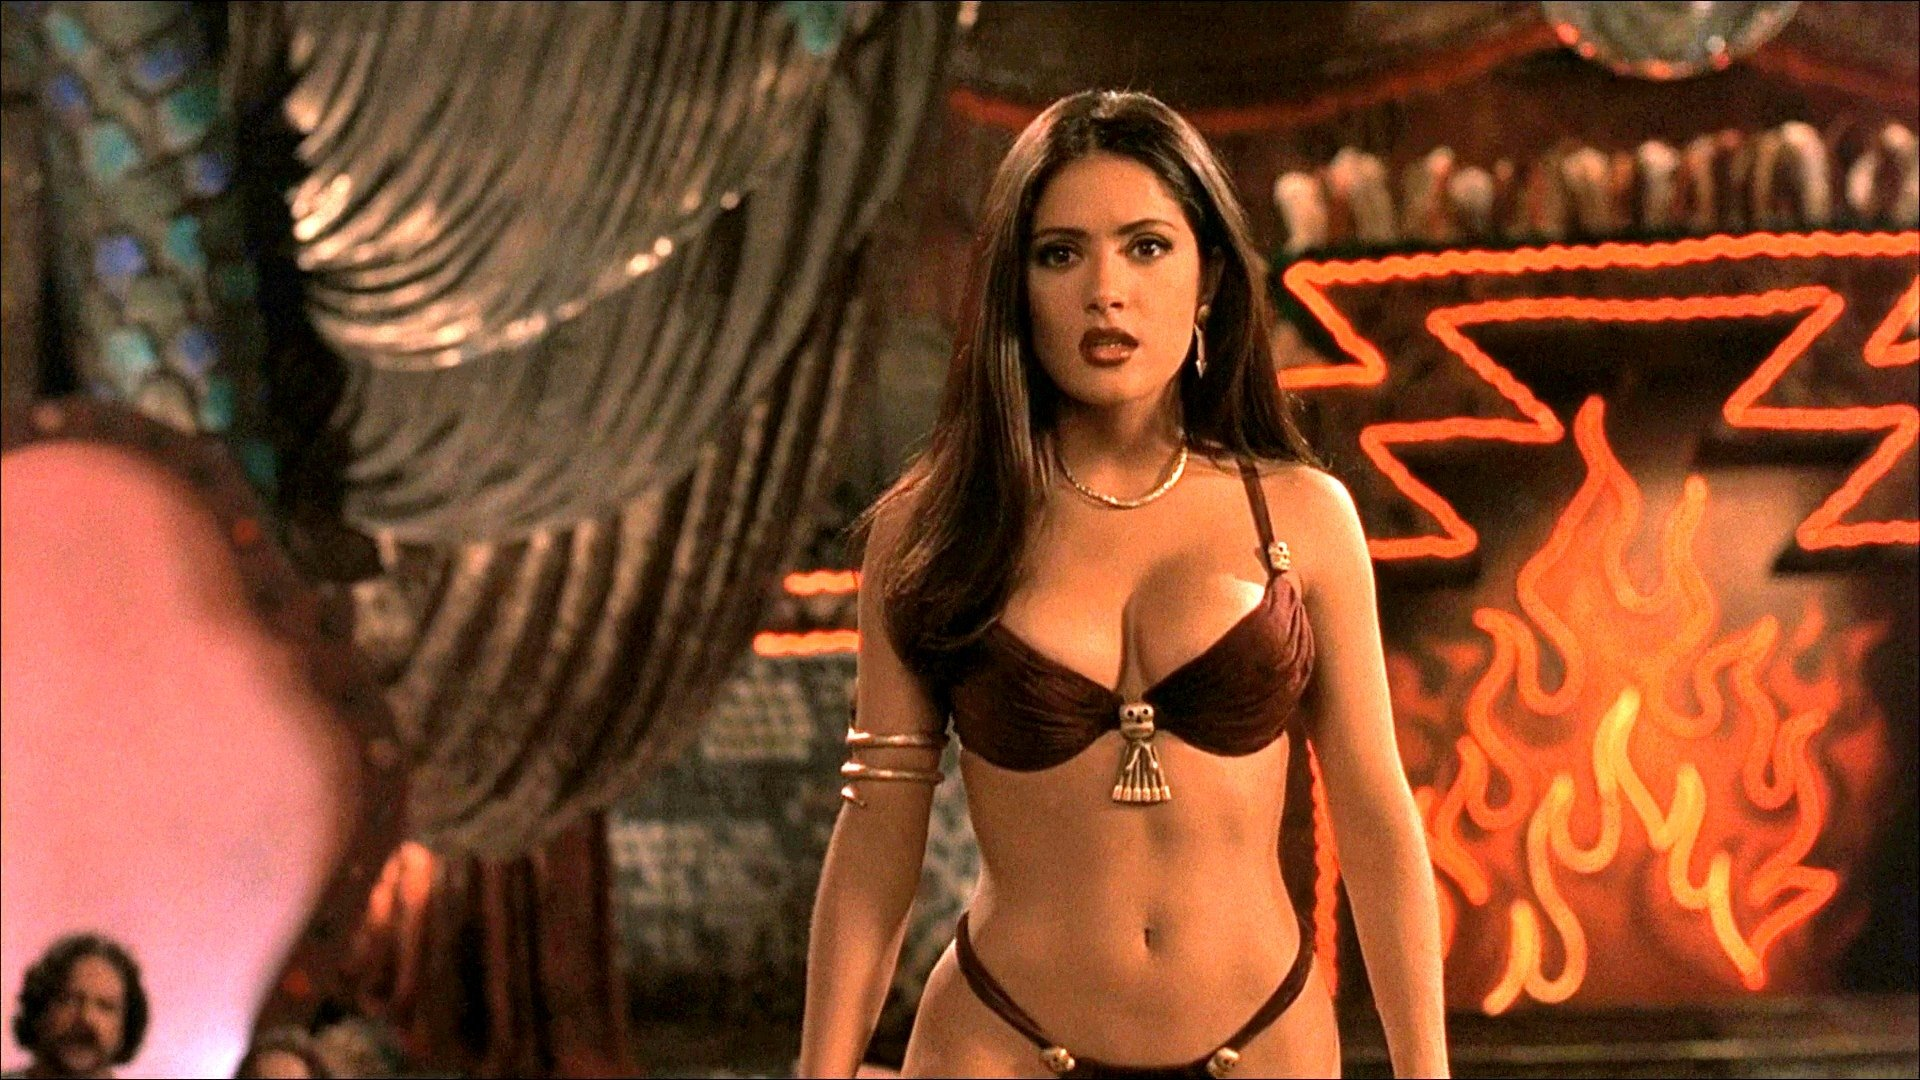 21 From Dusk Till Dawn Hd Wallpapers Background Images